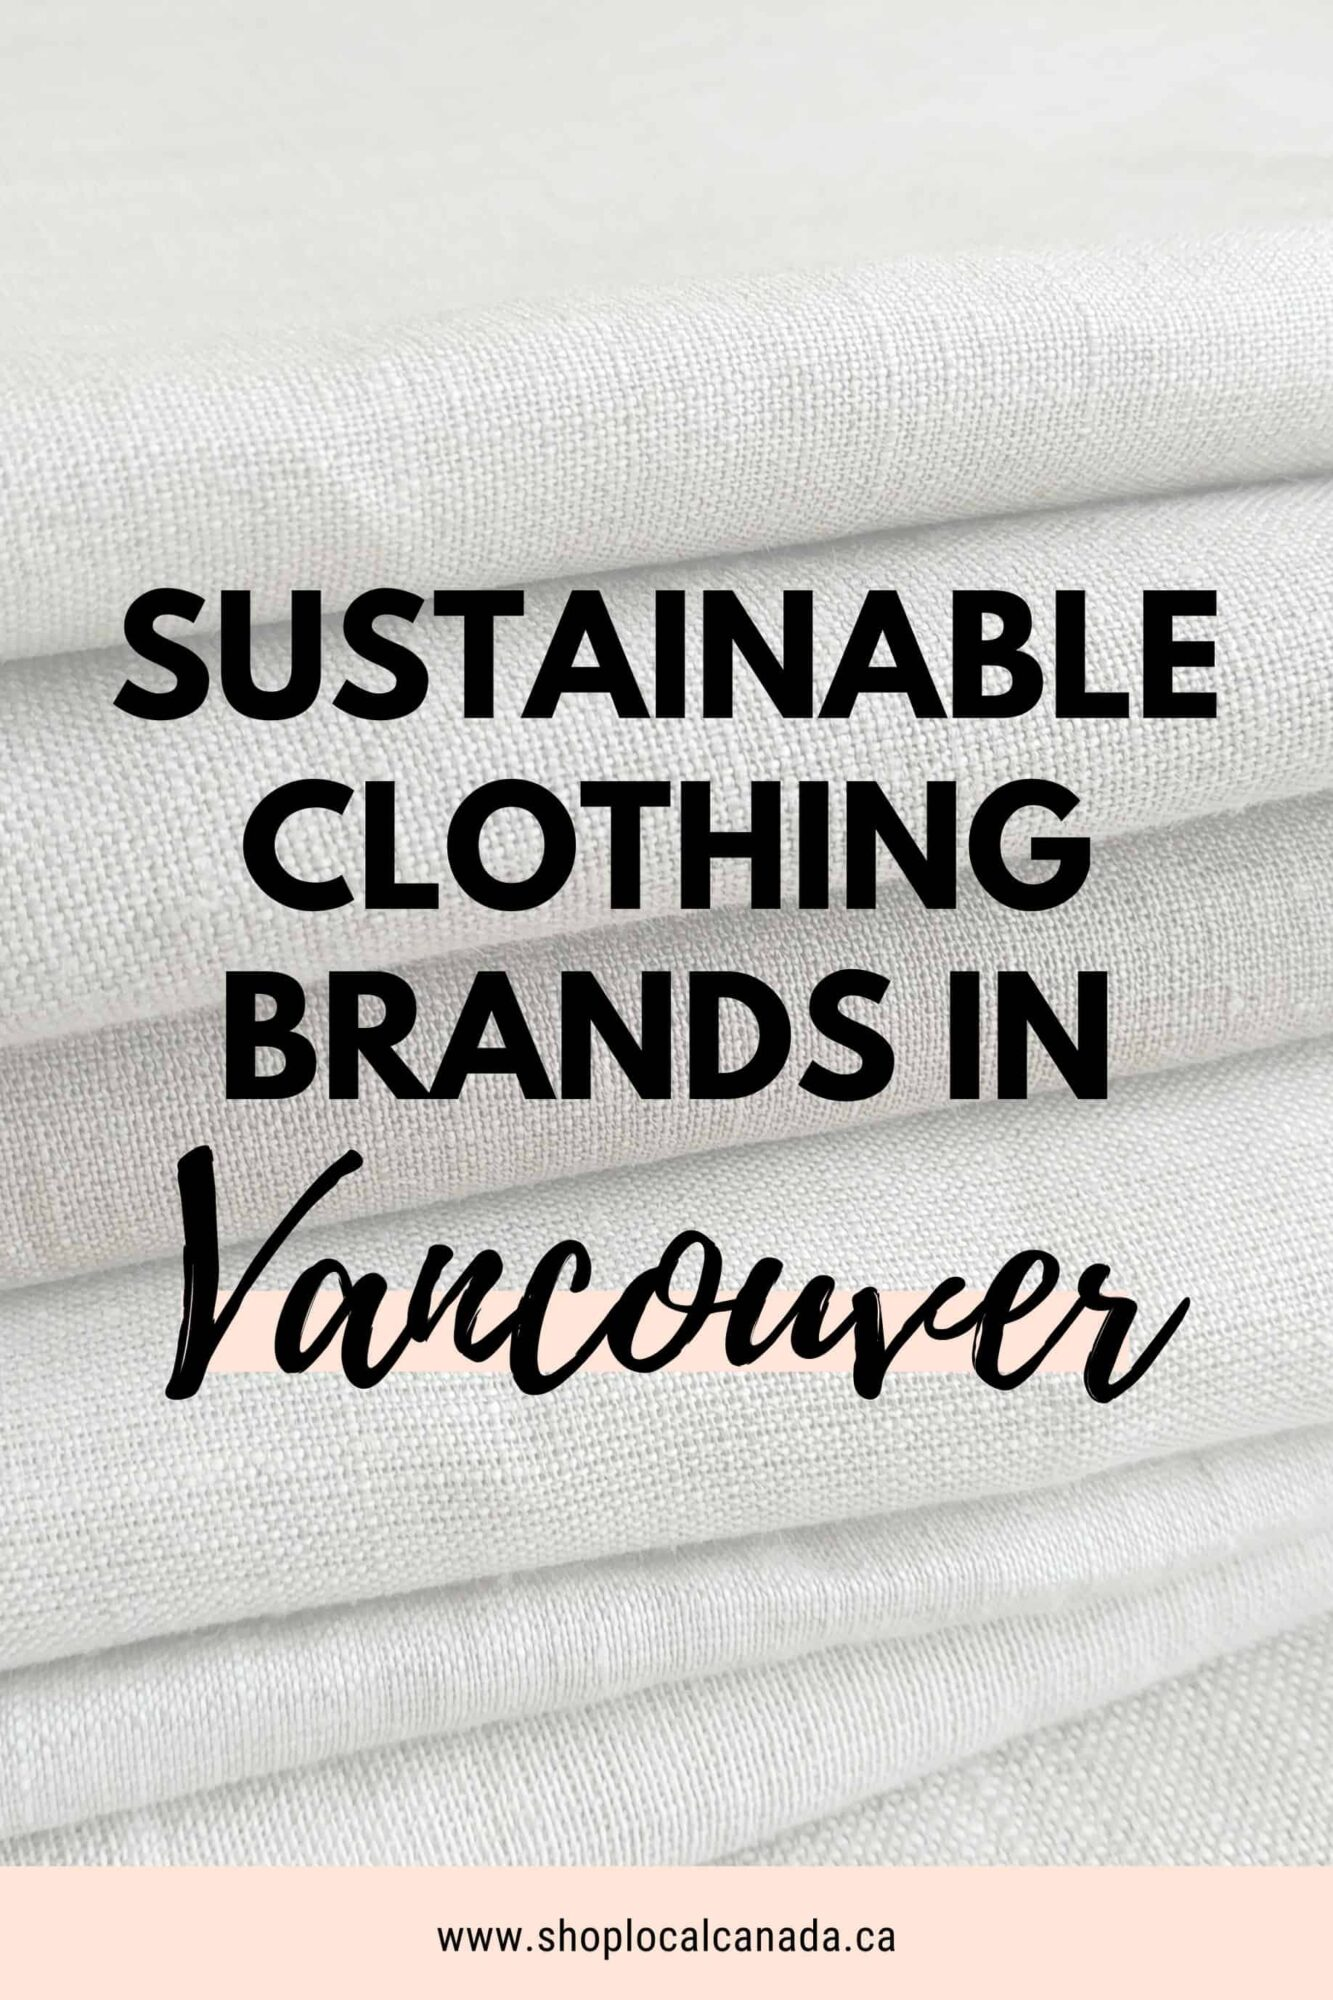 Sustainable Clothing Brands in Vancouver